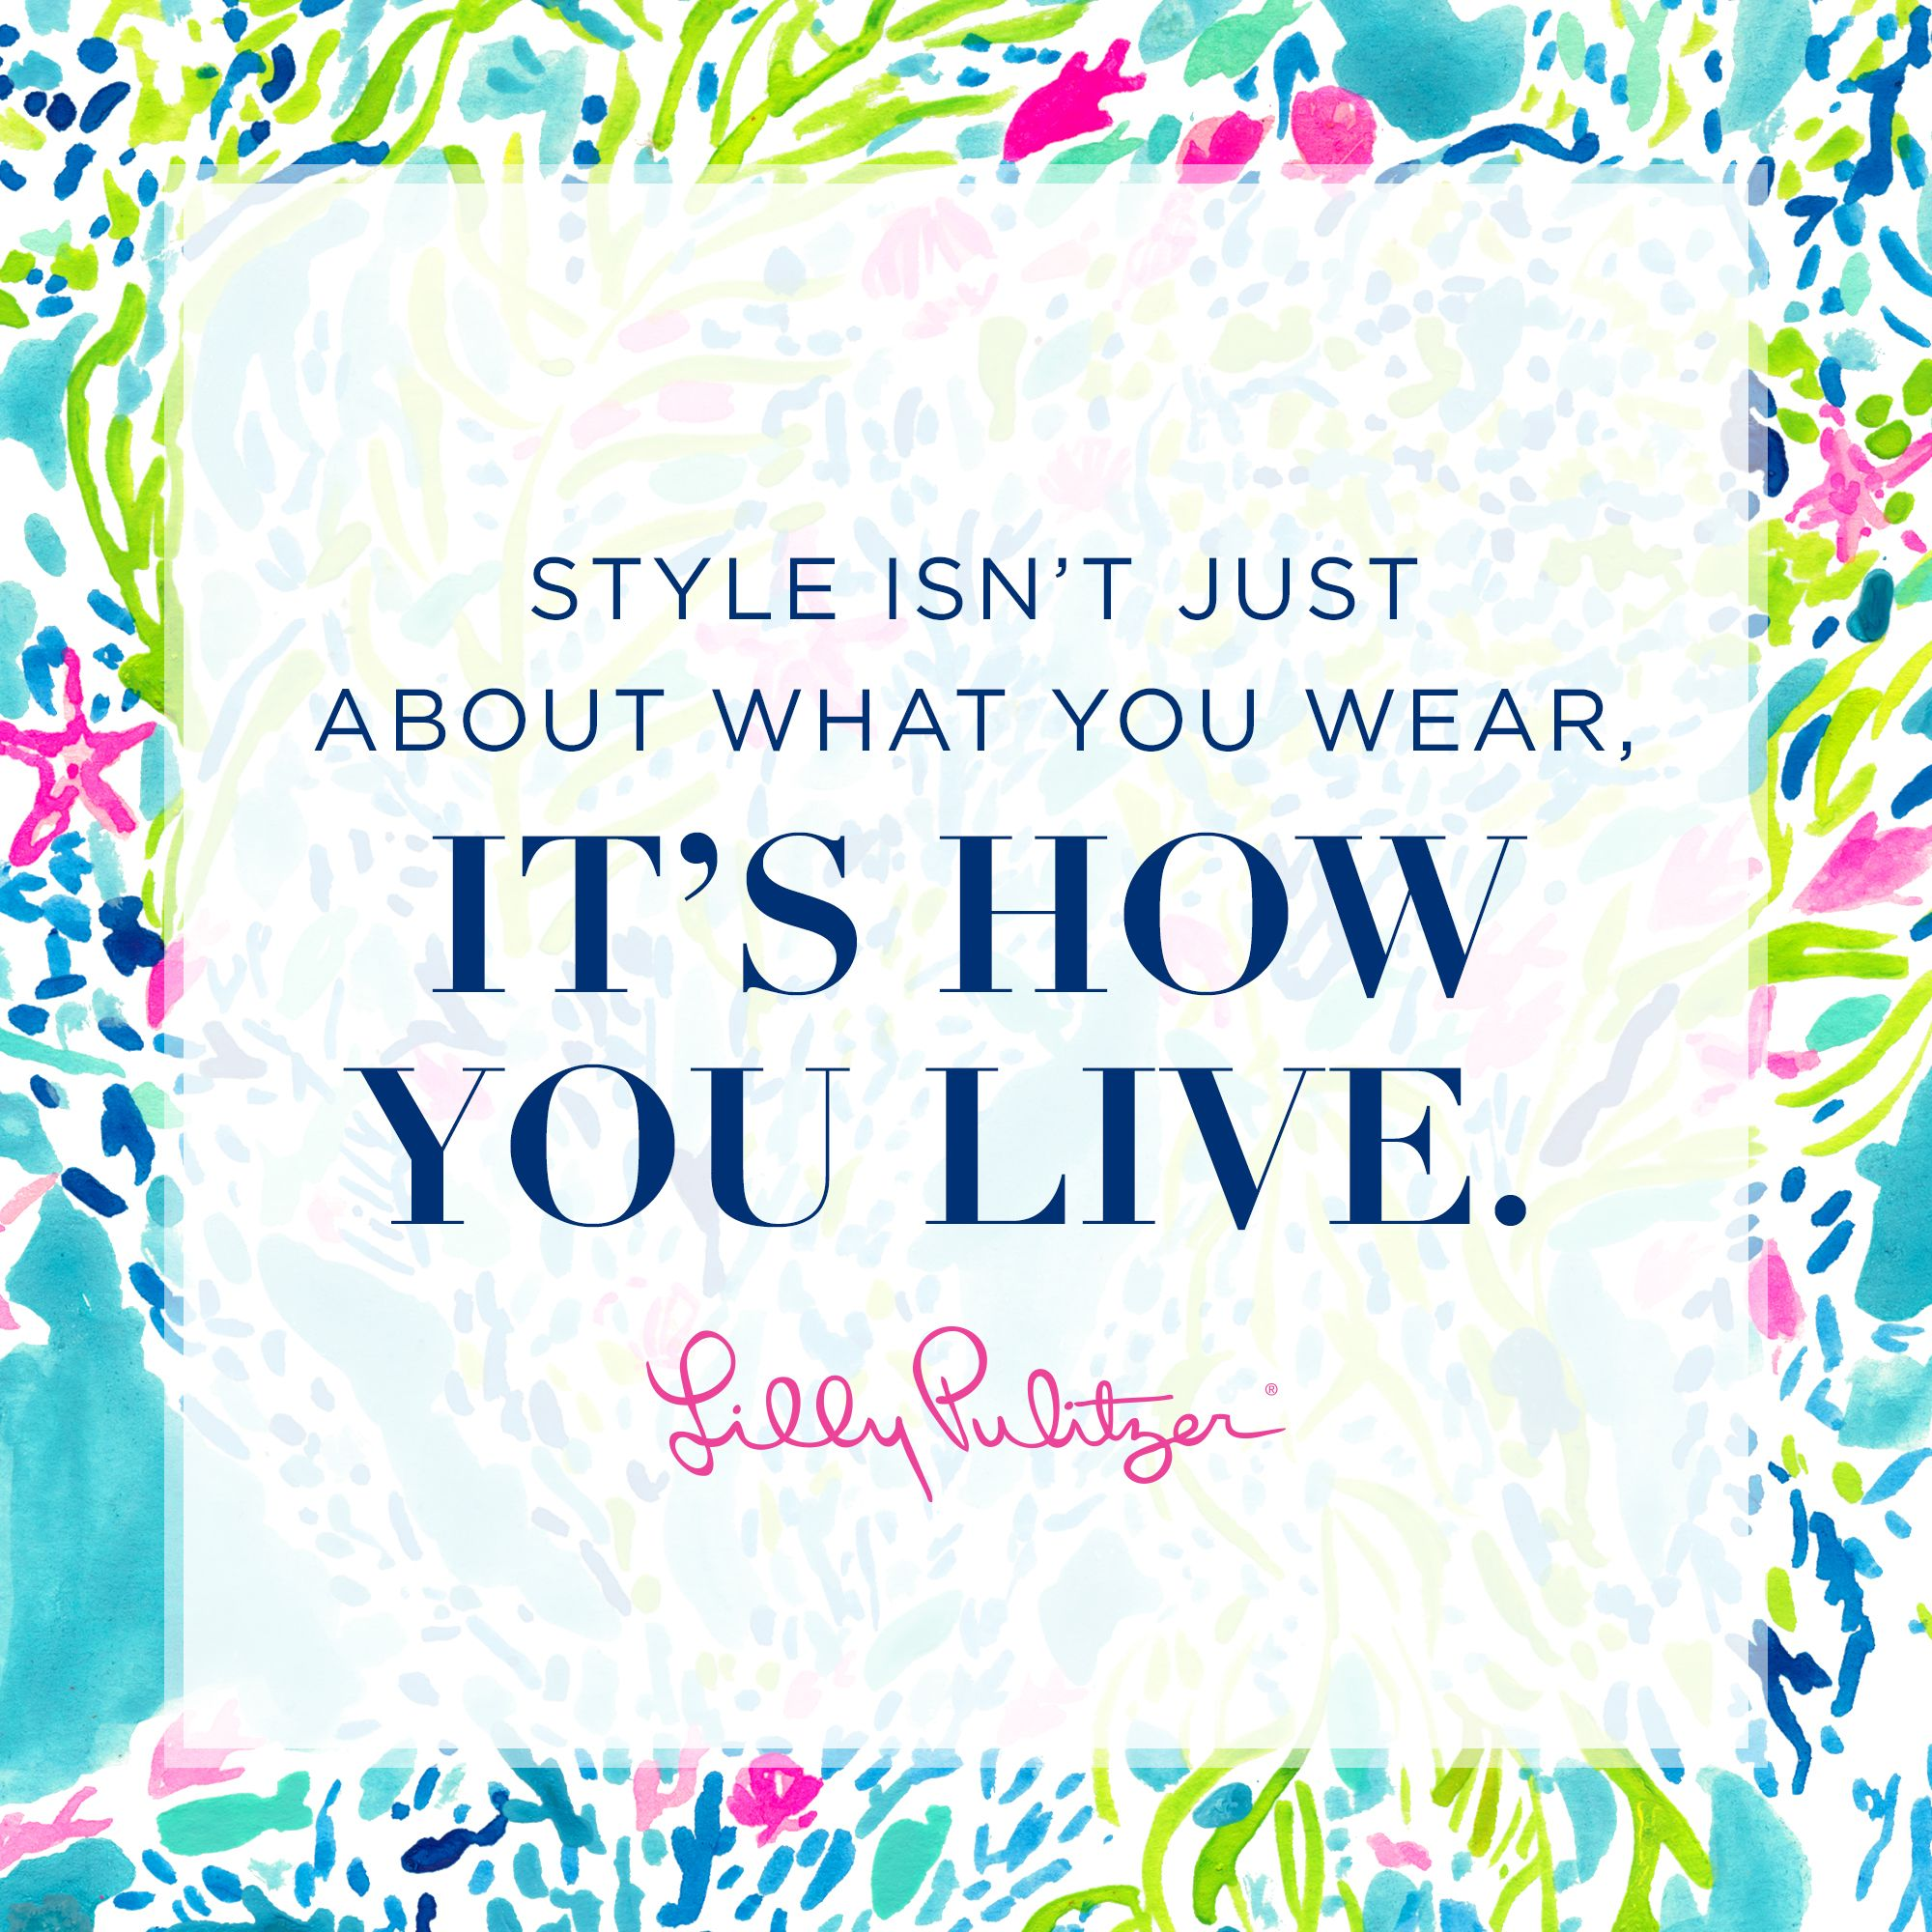 Lilly Pulitzer Quotes 8 Of The Best Lilly Pulitzer Quotes Of All Time  Wisdom